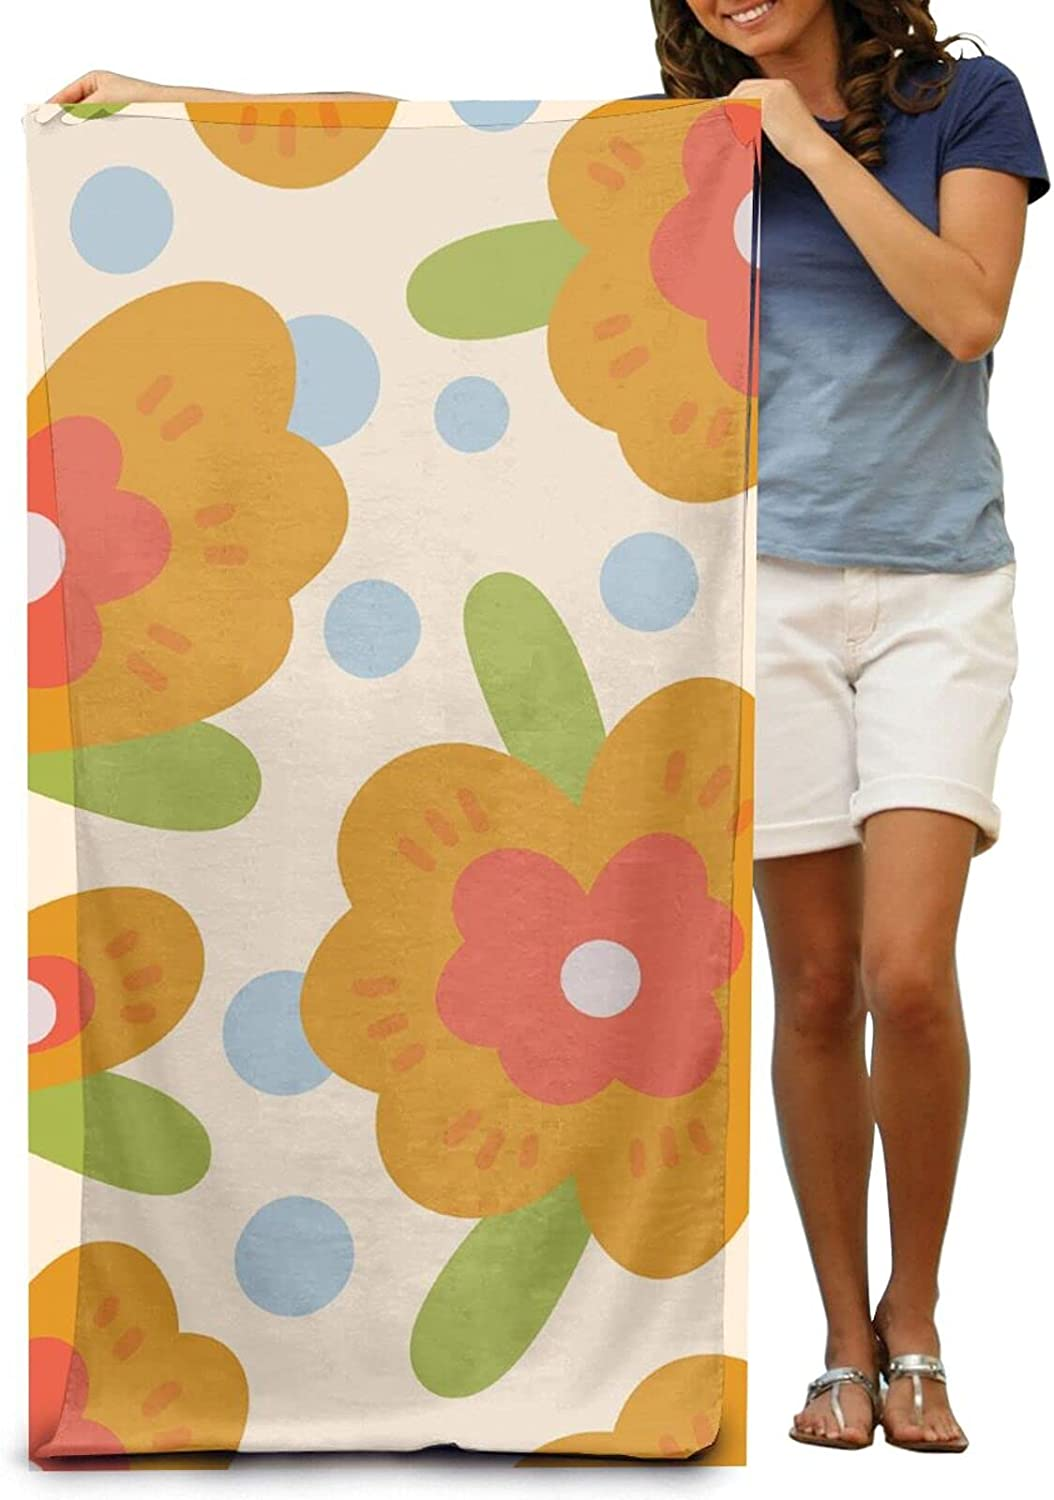 NINAINAI Super Opening large release sale Soft Luxury Bath To 5 ☆ popular Flowers Towel Absorbent